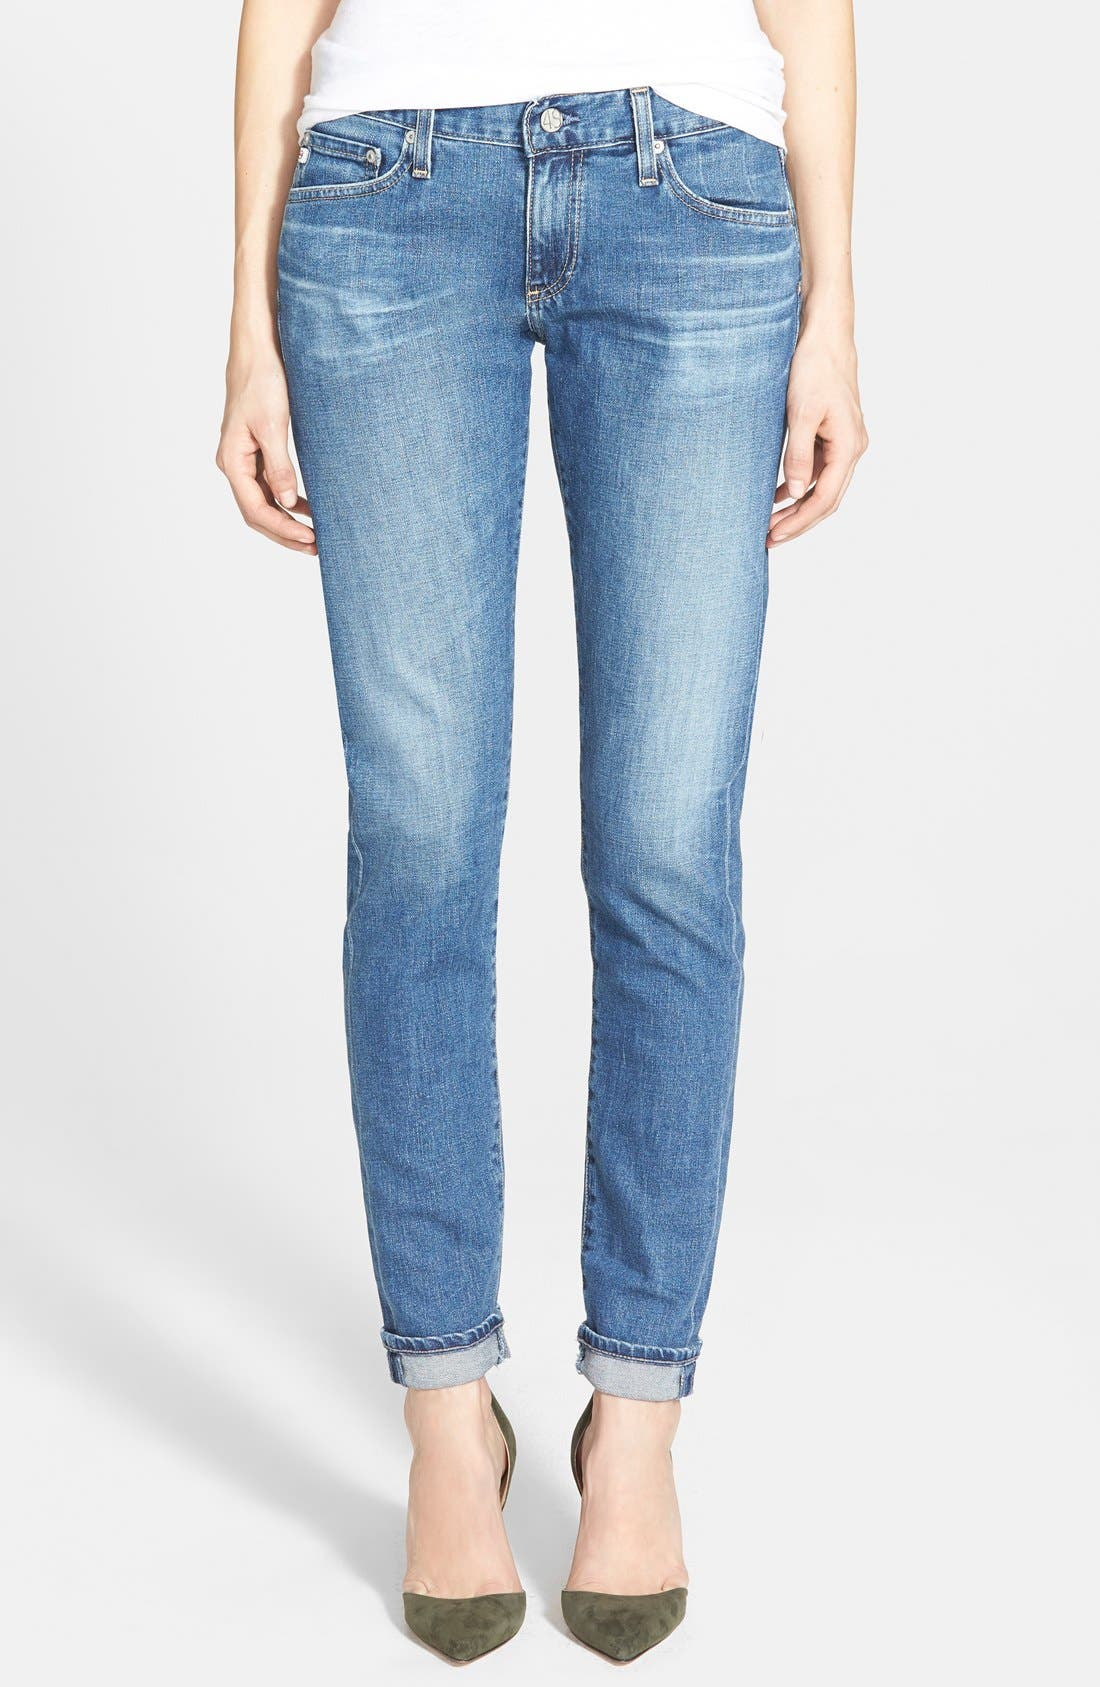 Alternate Image 1 Selected - AG 'The Nikki' Relaxed Skinny Jeans (8 Year Tundra)